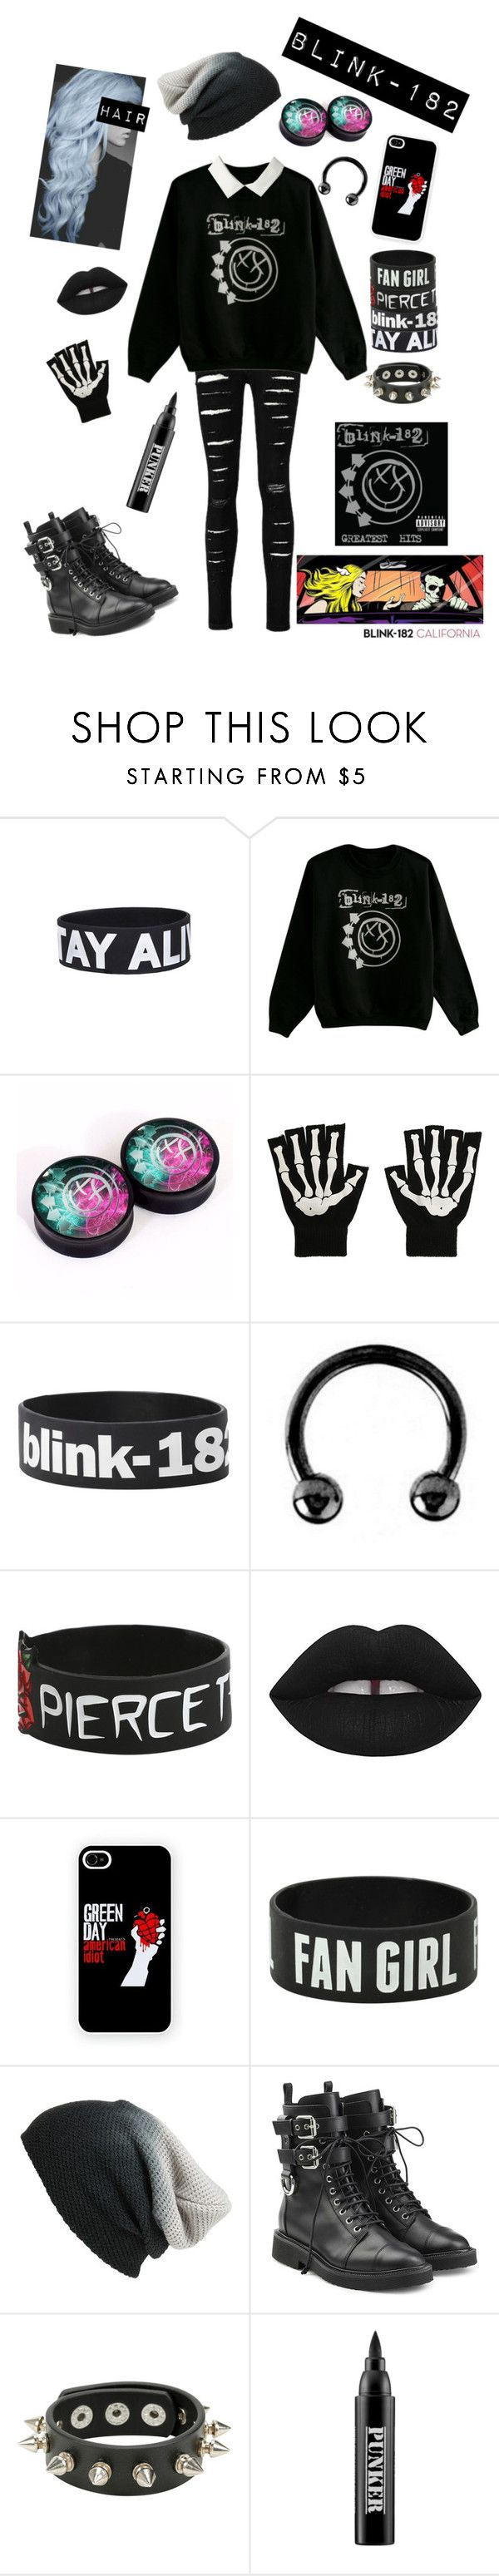 """""""Blink-182 Set 2"""" by chemicalfallout249 ❤ liked on Polyvore featuring Urbiana, Lime Crime, BP., Giuseppe Zanotti and Ardency Inn"""